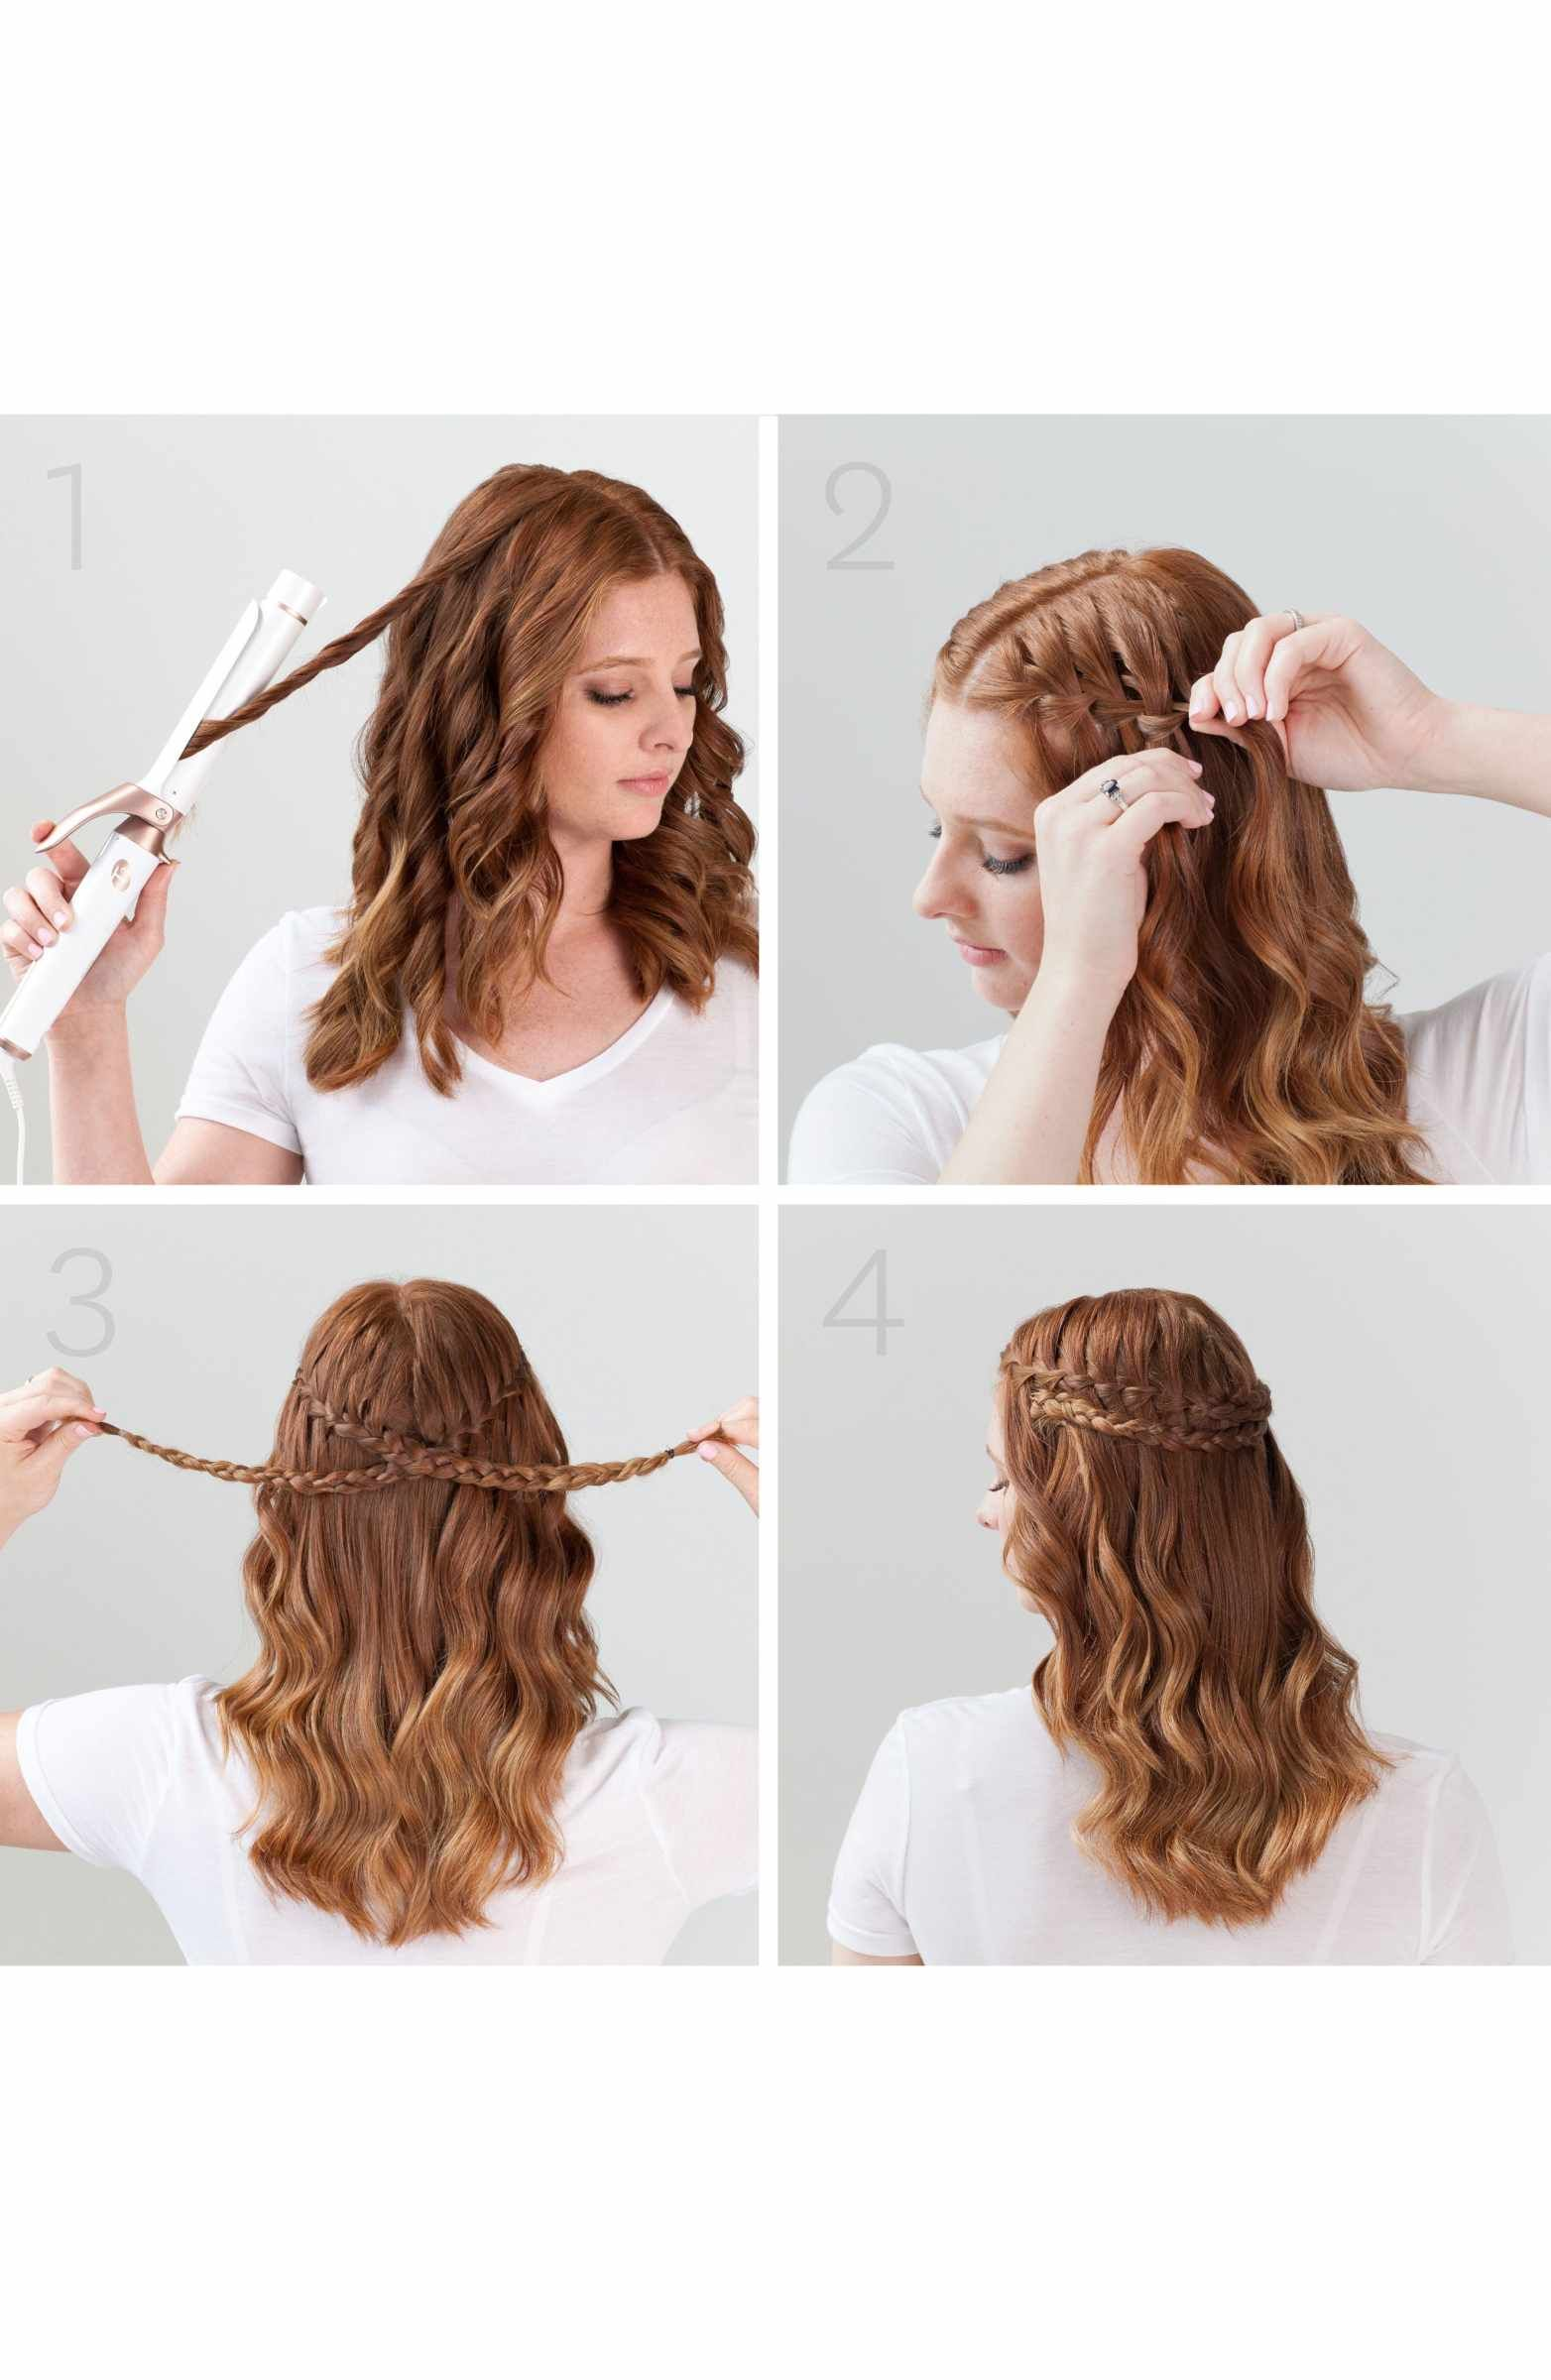 T3 Twirl Convertible 1 25 Inch Interchangeable Clip Barrel Curling Iron Nordstrom Hair Styles Curling Thick Hair Thick Hair Styles